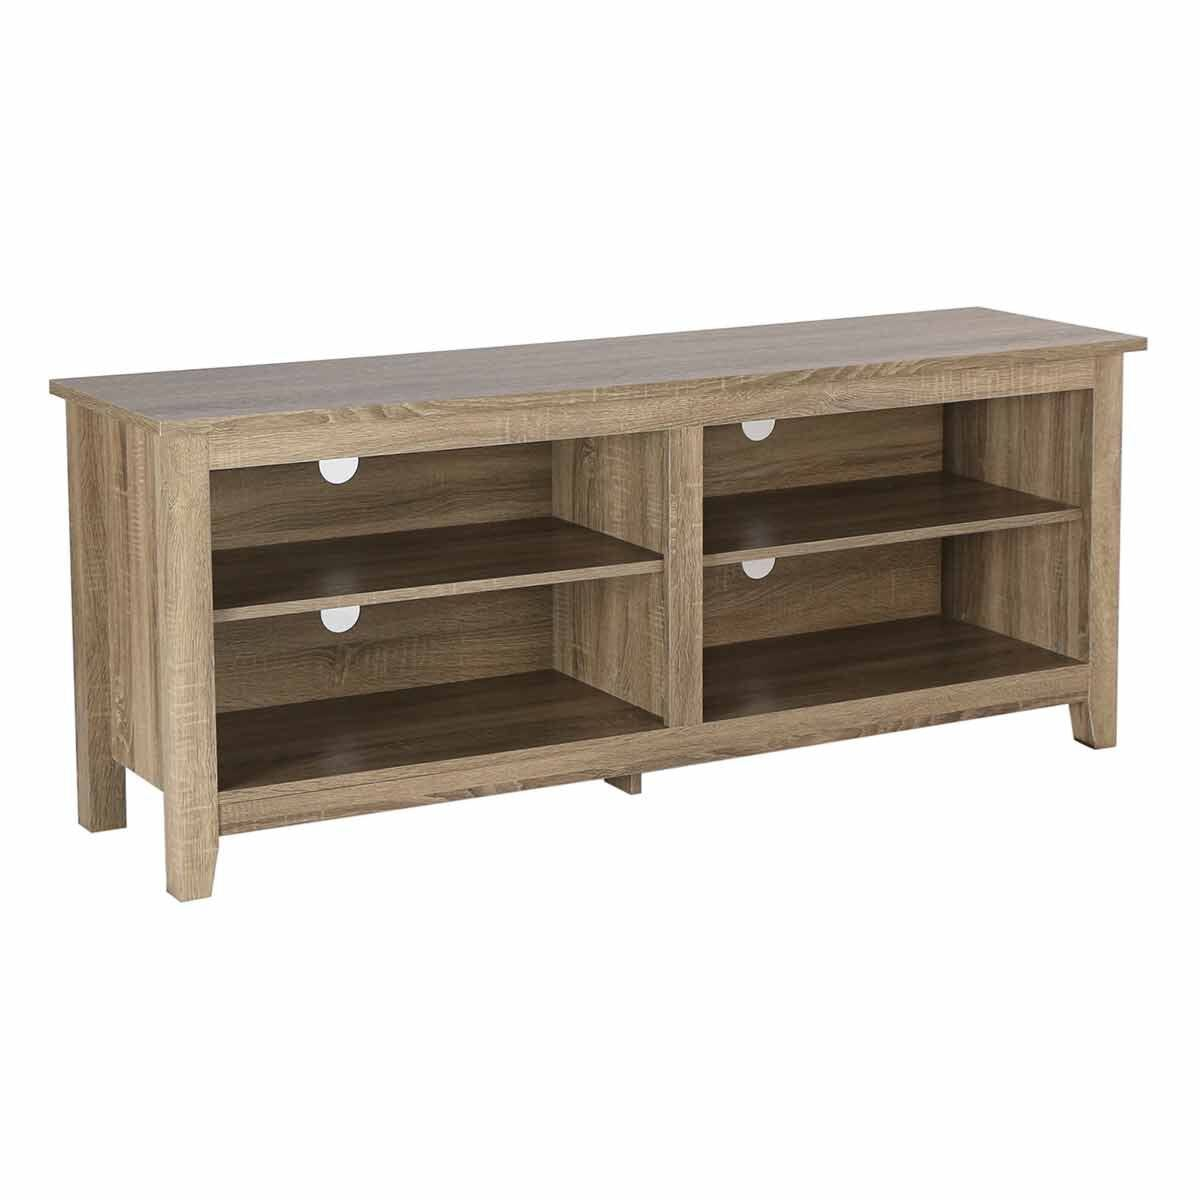 Cosenza Rustic Wood TV Stand Light Brown